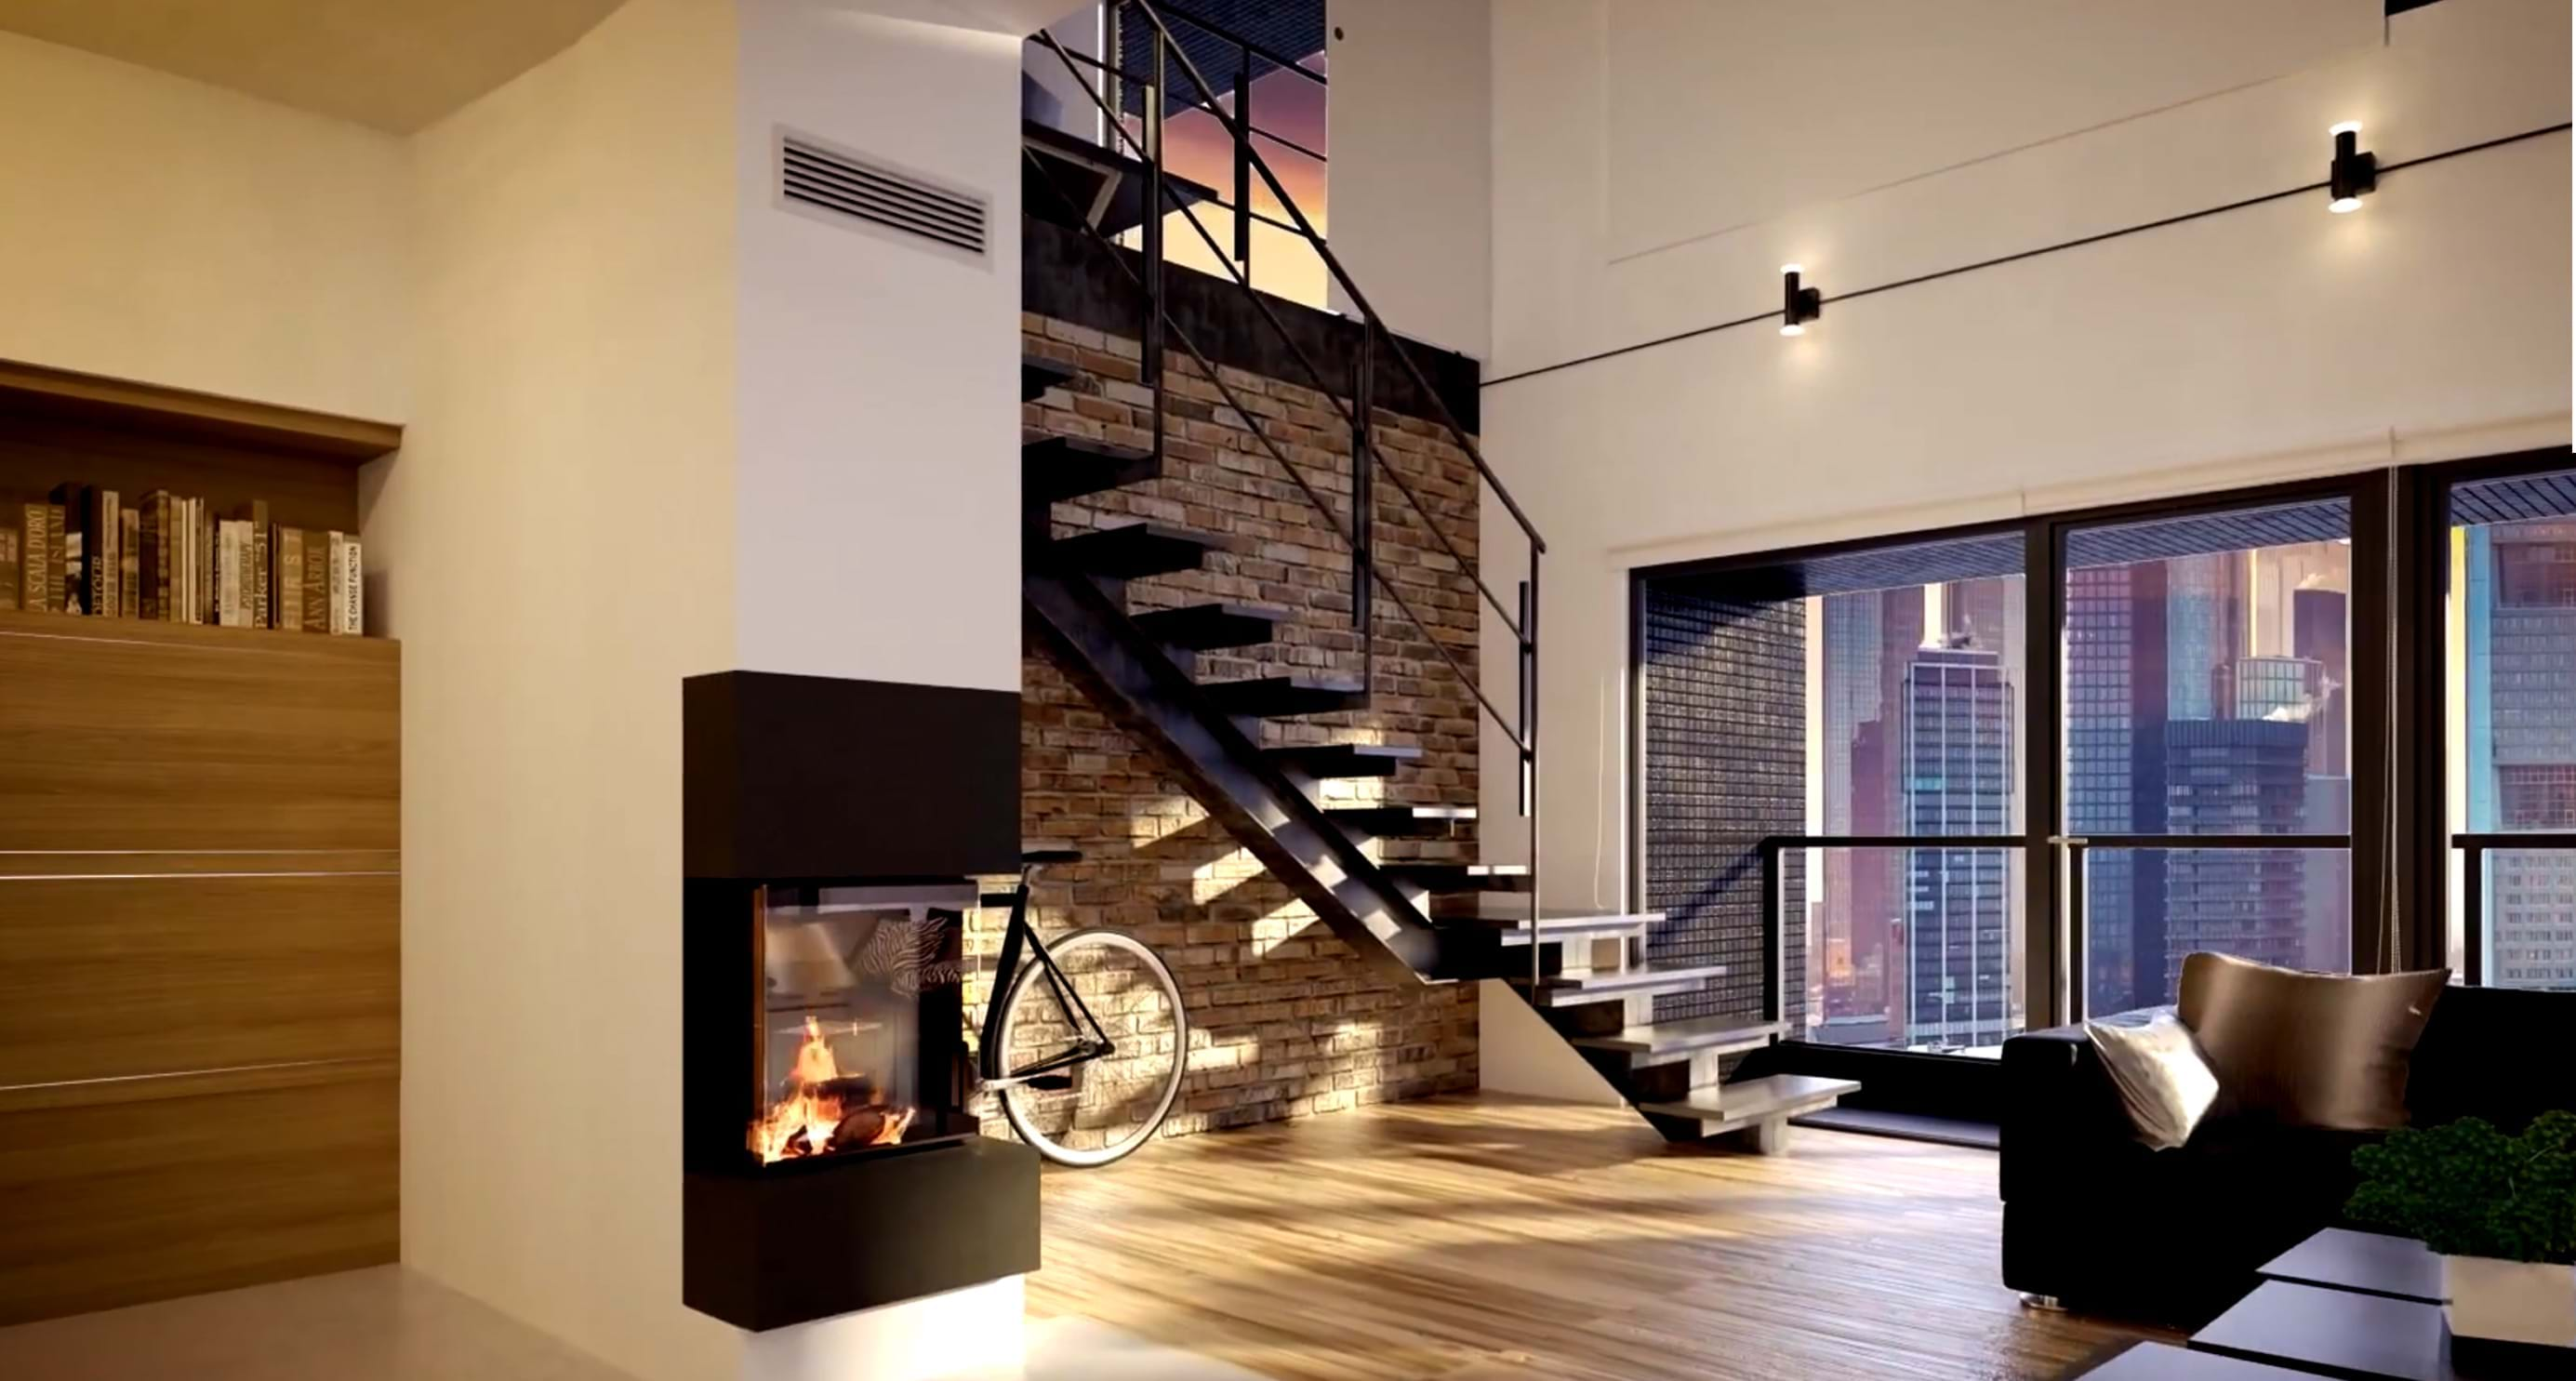 Installation of fireplace in modern apartment